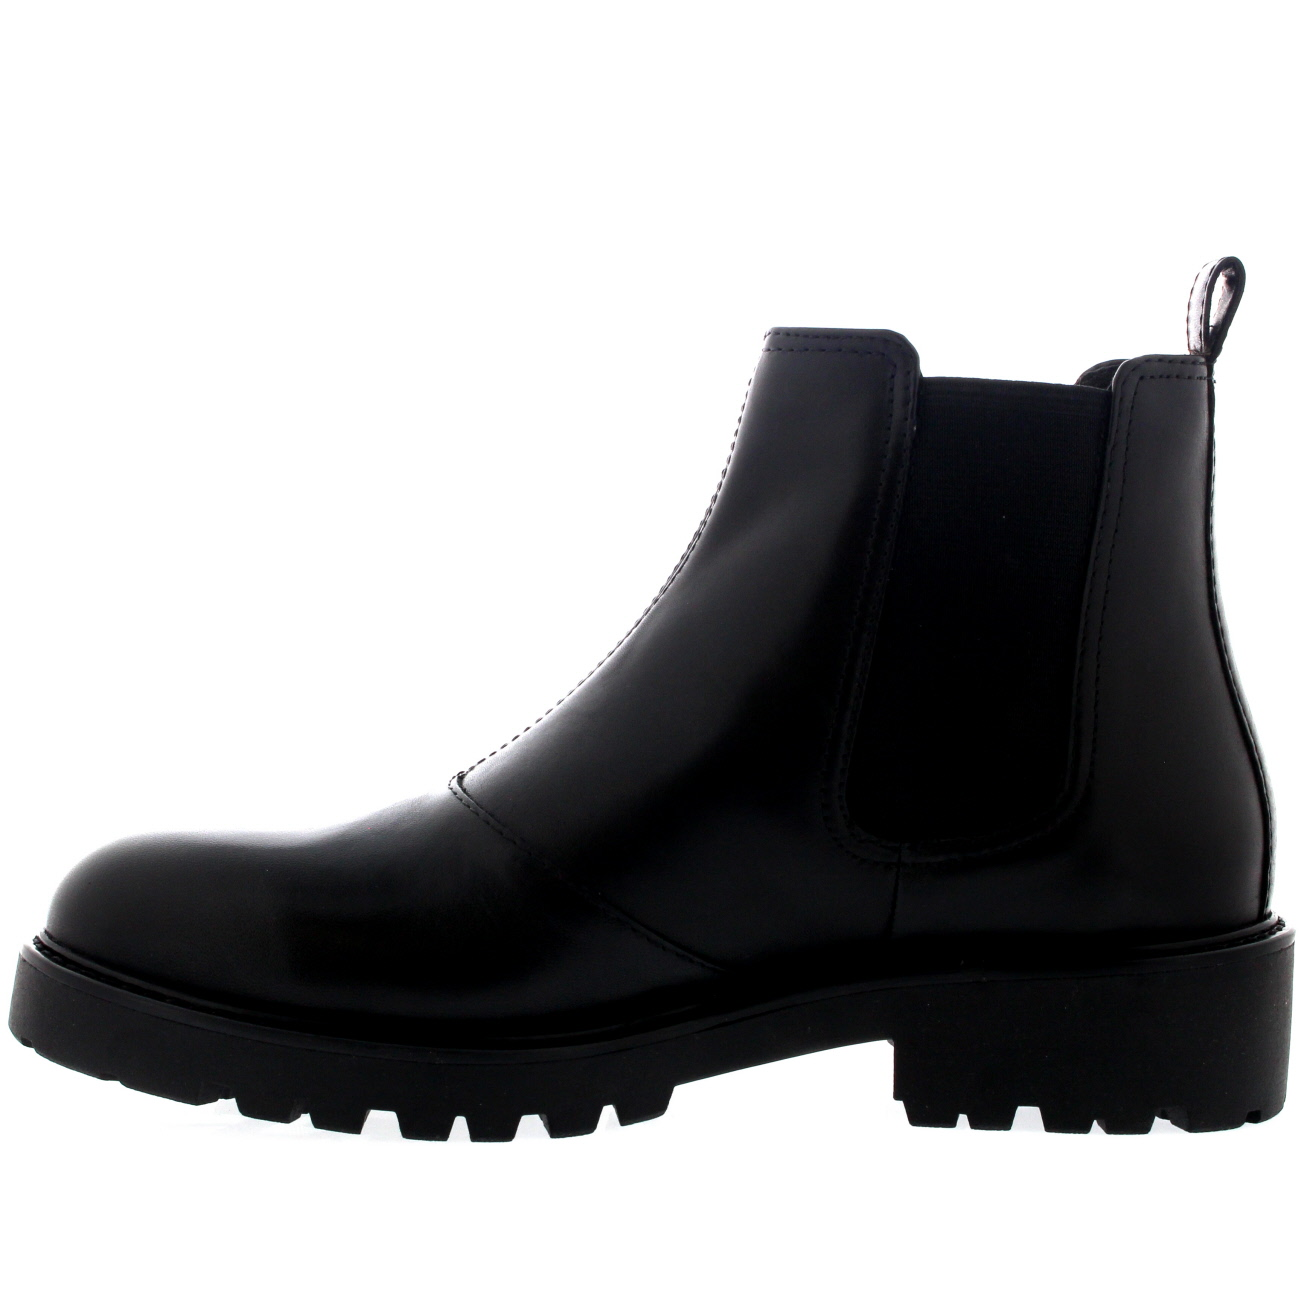 Original Grenson Womenu0026#39;s Grace Chelsea Boots - Black - Free UK Delivery Over U00a350